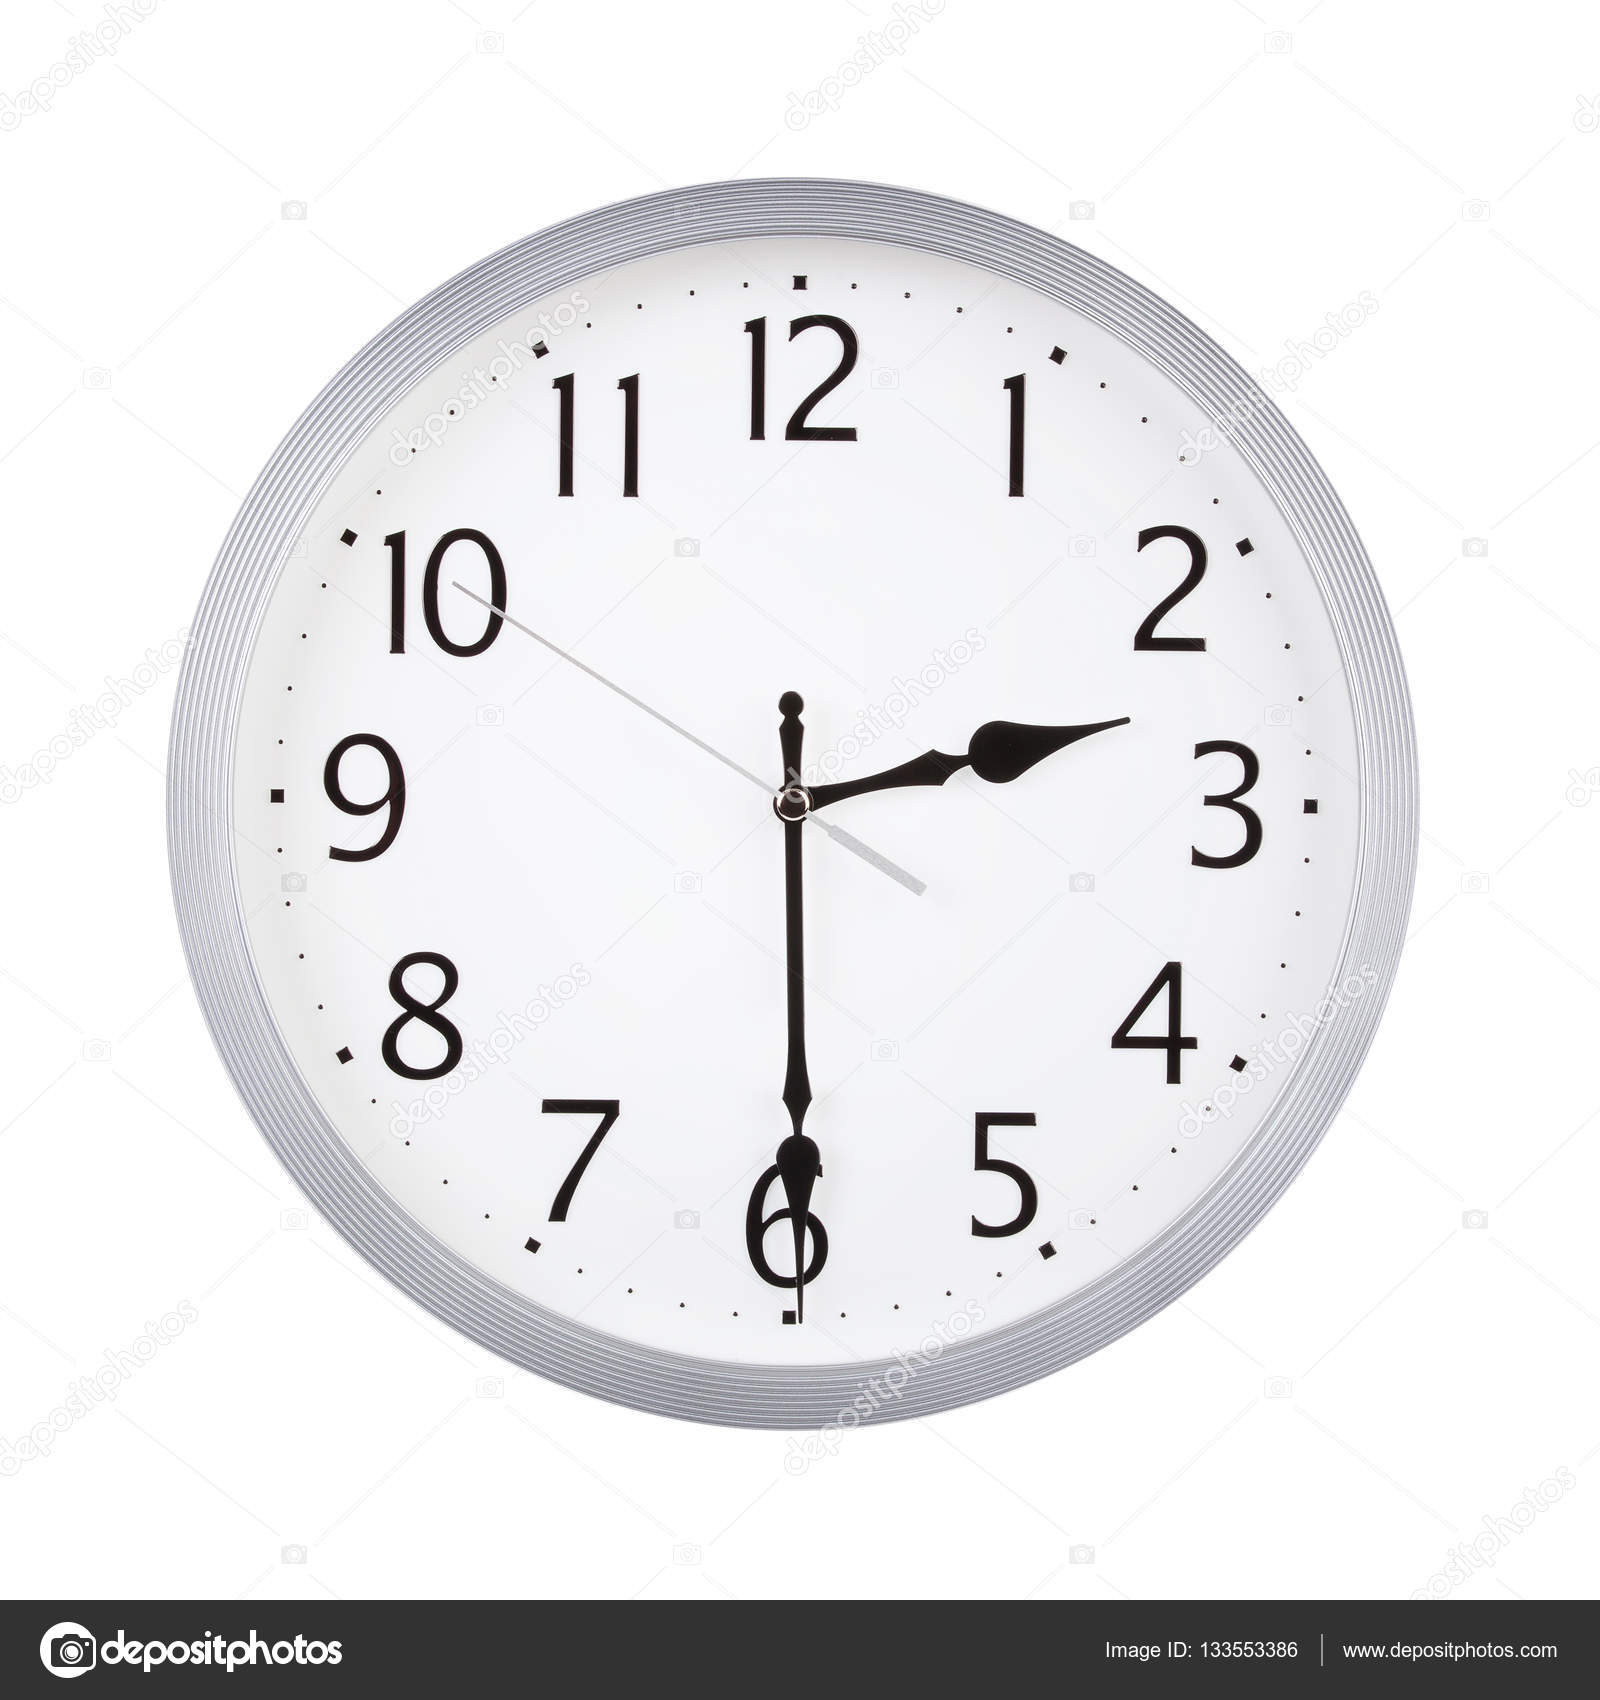 Half Past Two On A Clock Face